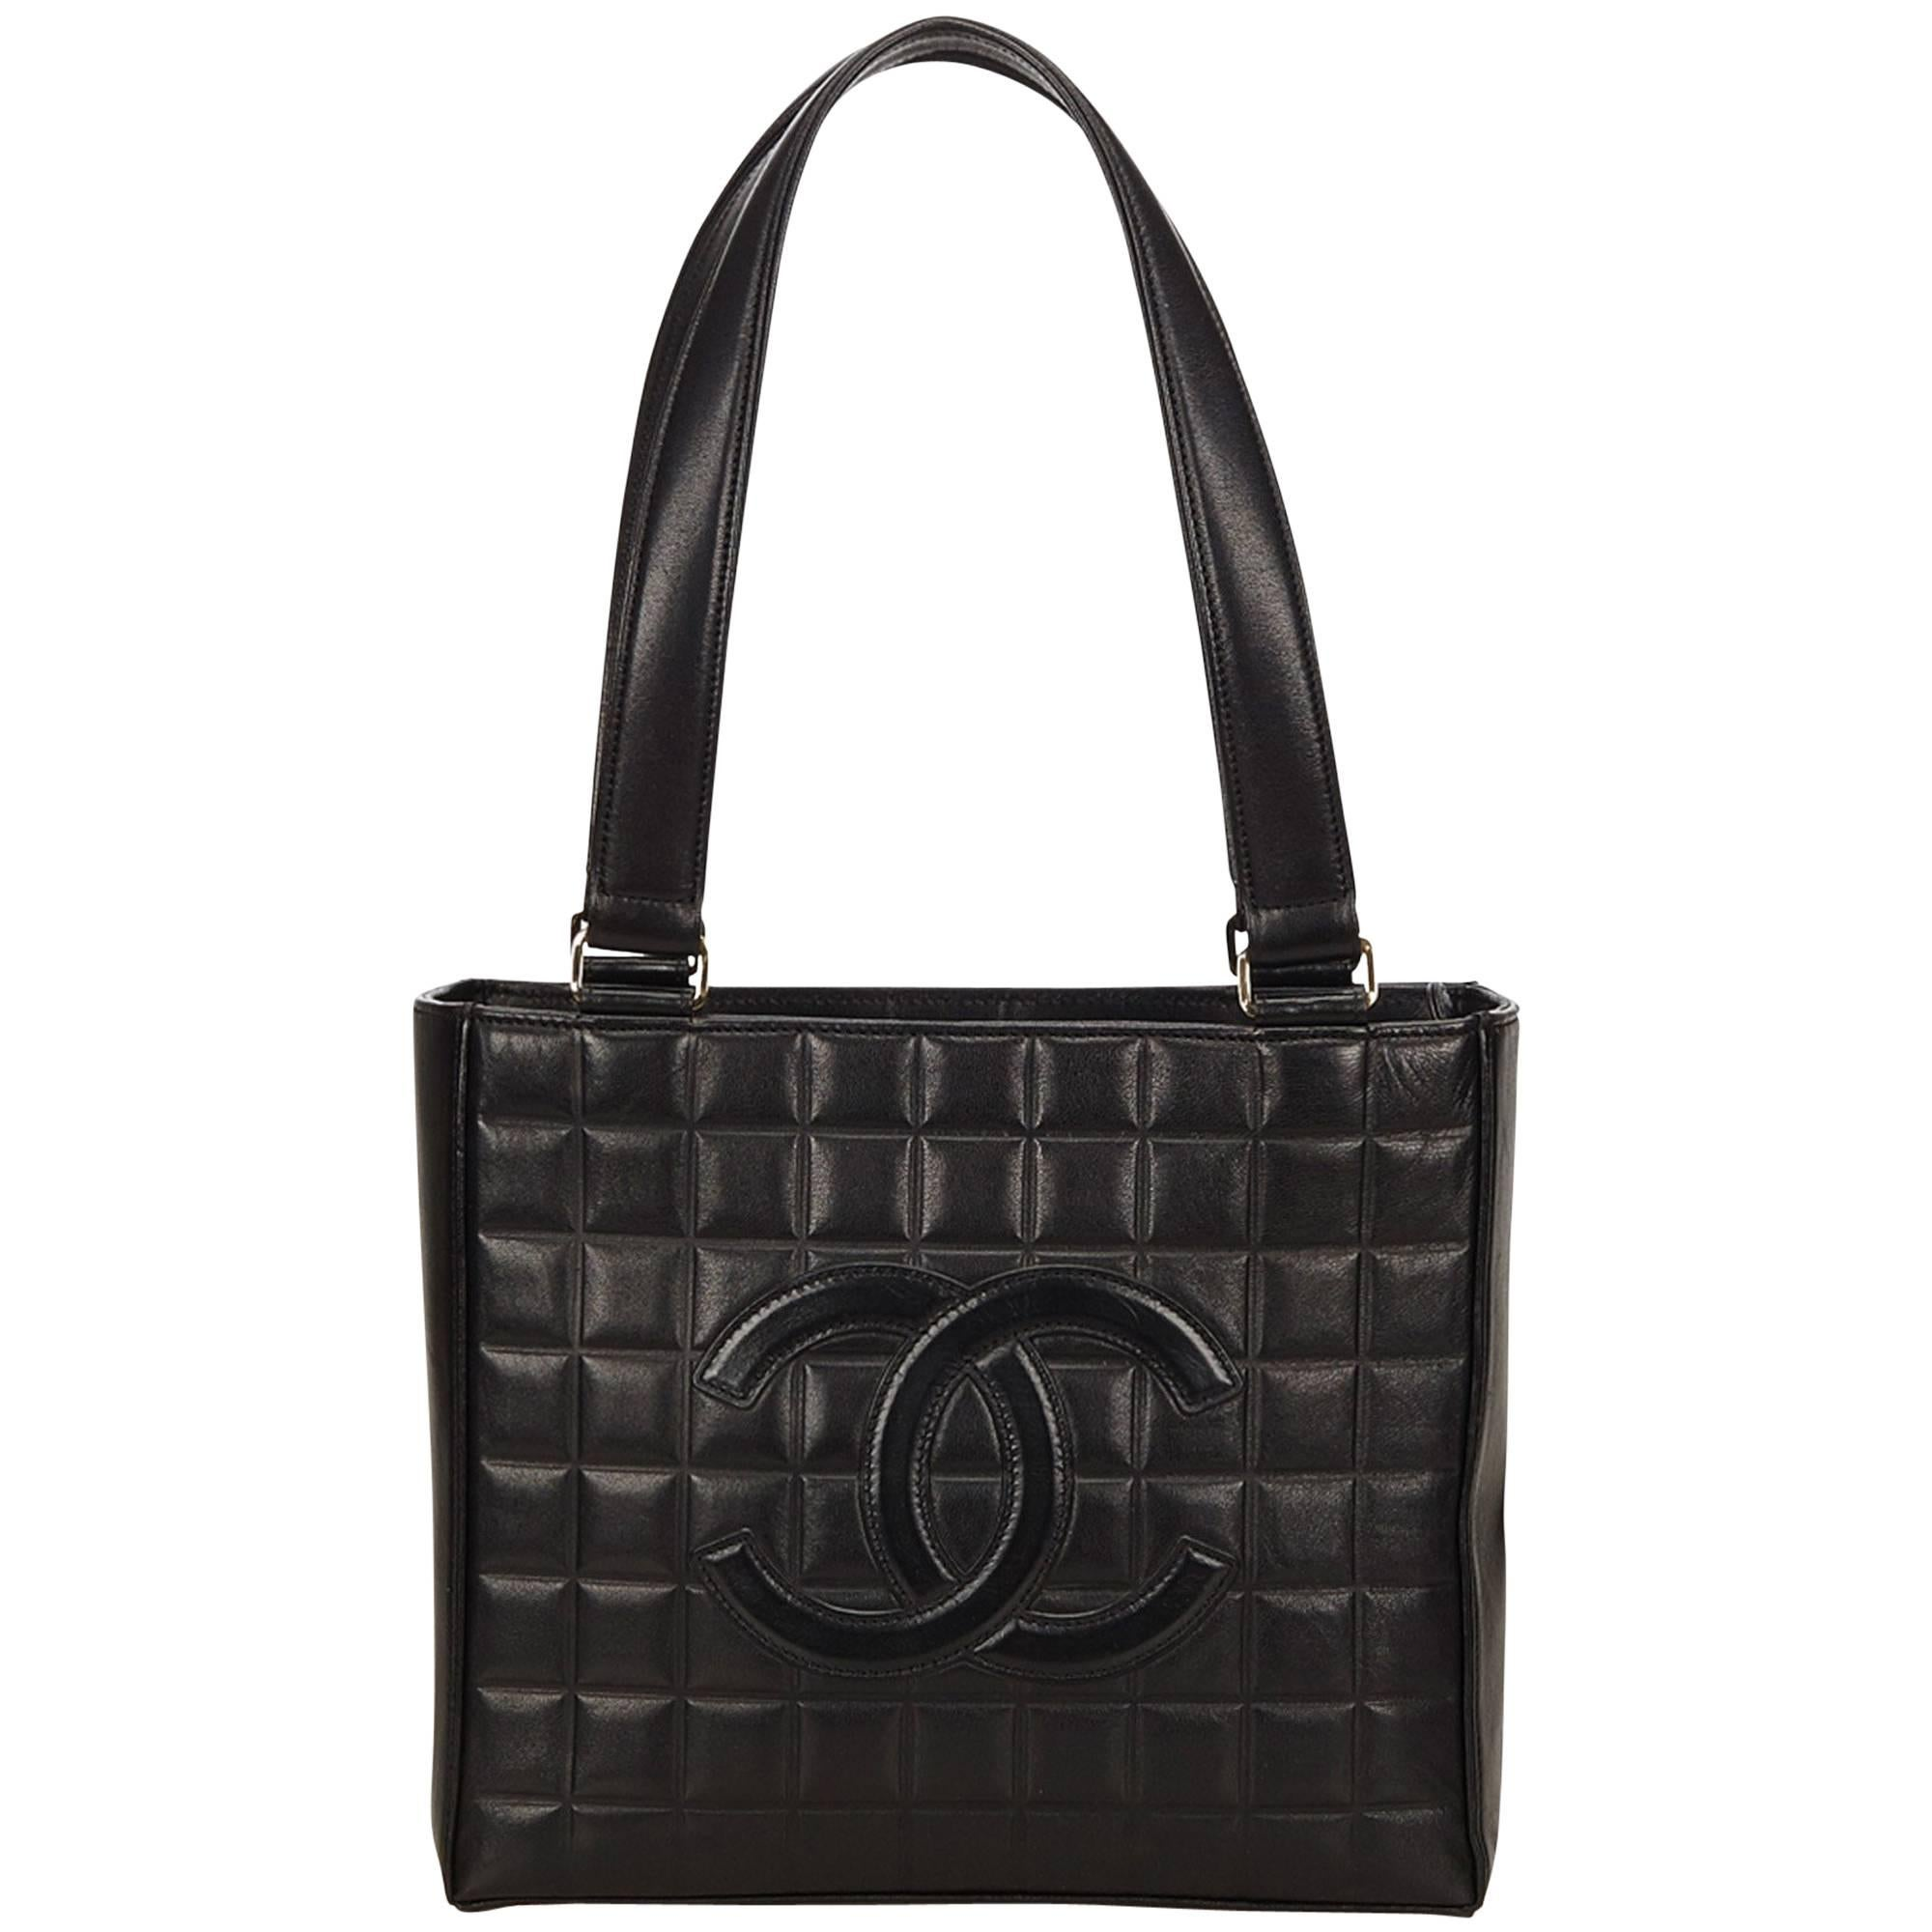 6ca492dba1b7 Chanel Black Choco Bar Leather Shoulder Bag For Sale at 1stdibs